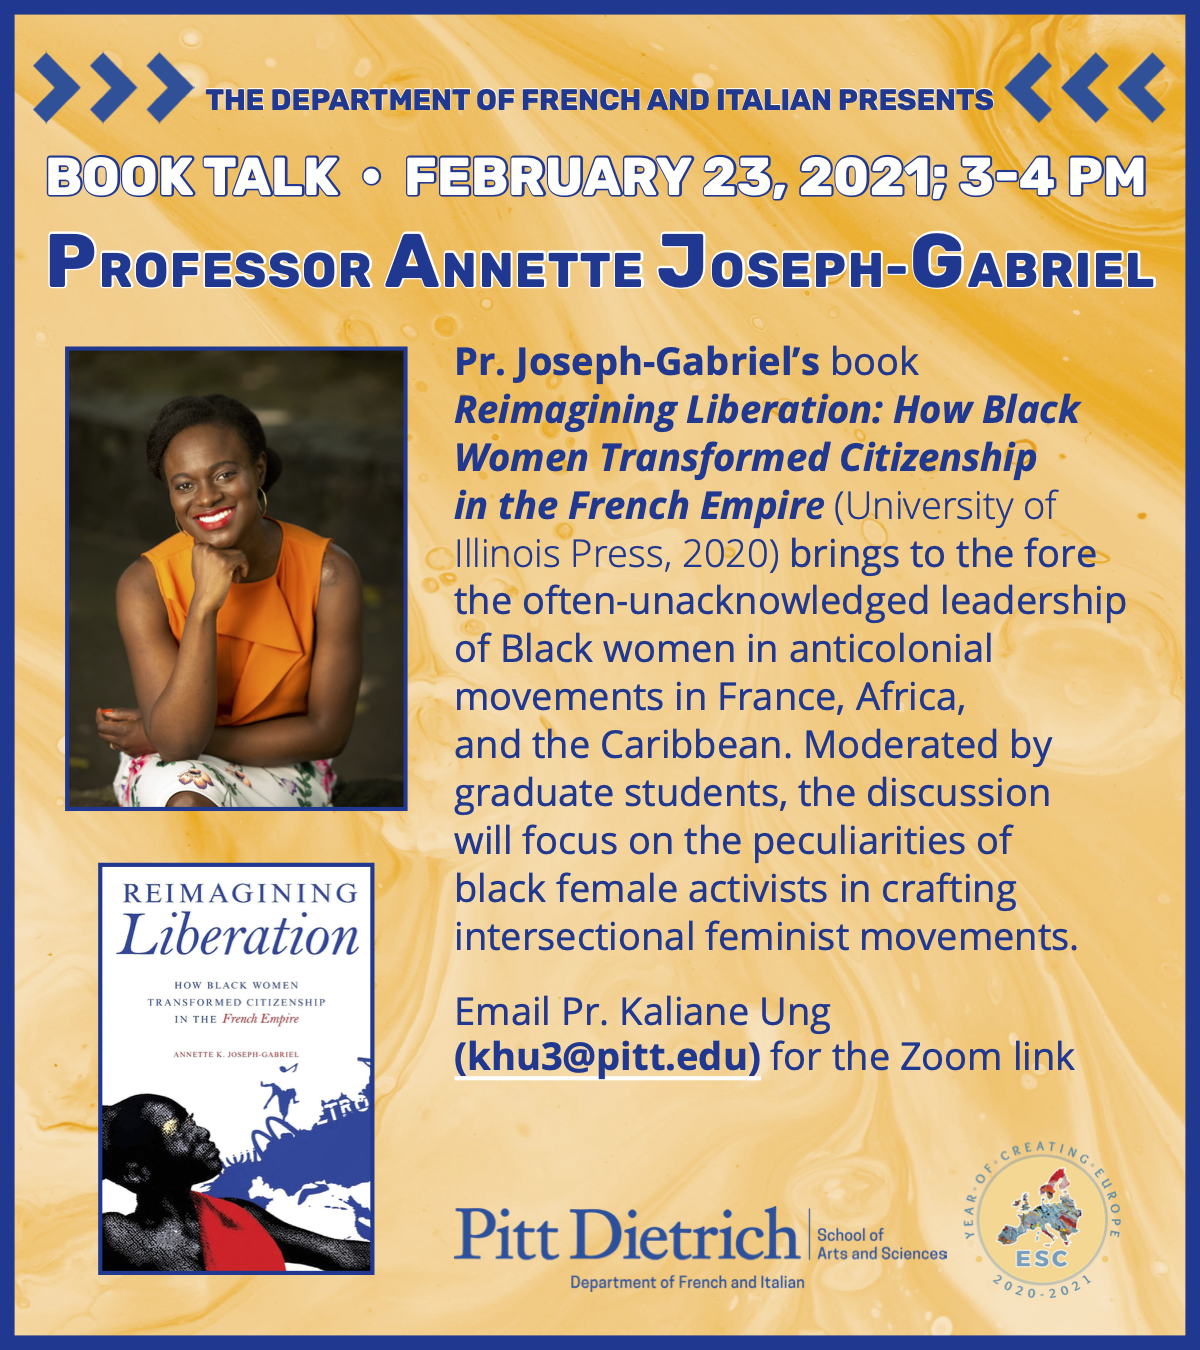 Join us for a book talk on February 23, 2021 from 3-4pm on Zoom!  Prof. Joseph-Gabriel's book Reimagining Liberation: How Black Women Transformed Citizenship in the French Empire (University of Illinois Press, 2020) brings to the fore the often-unacknowledged leadership of Black women in anticolonial movements in France, Africa, and the Caribbean. Moderated by graduate students, the discussion will focus on the peculiarities of black female activists in crafting intersectional feminist movements.   Email Prof. Kaliane Ung (khu3@pitt.edu) for the Zoom link.  This flyer is yellow with blue text and a photograph of the book's author is also on the flyer.